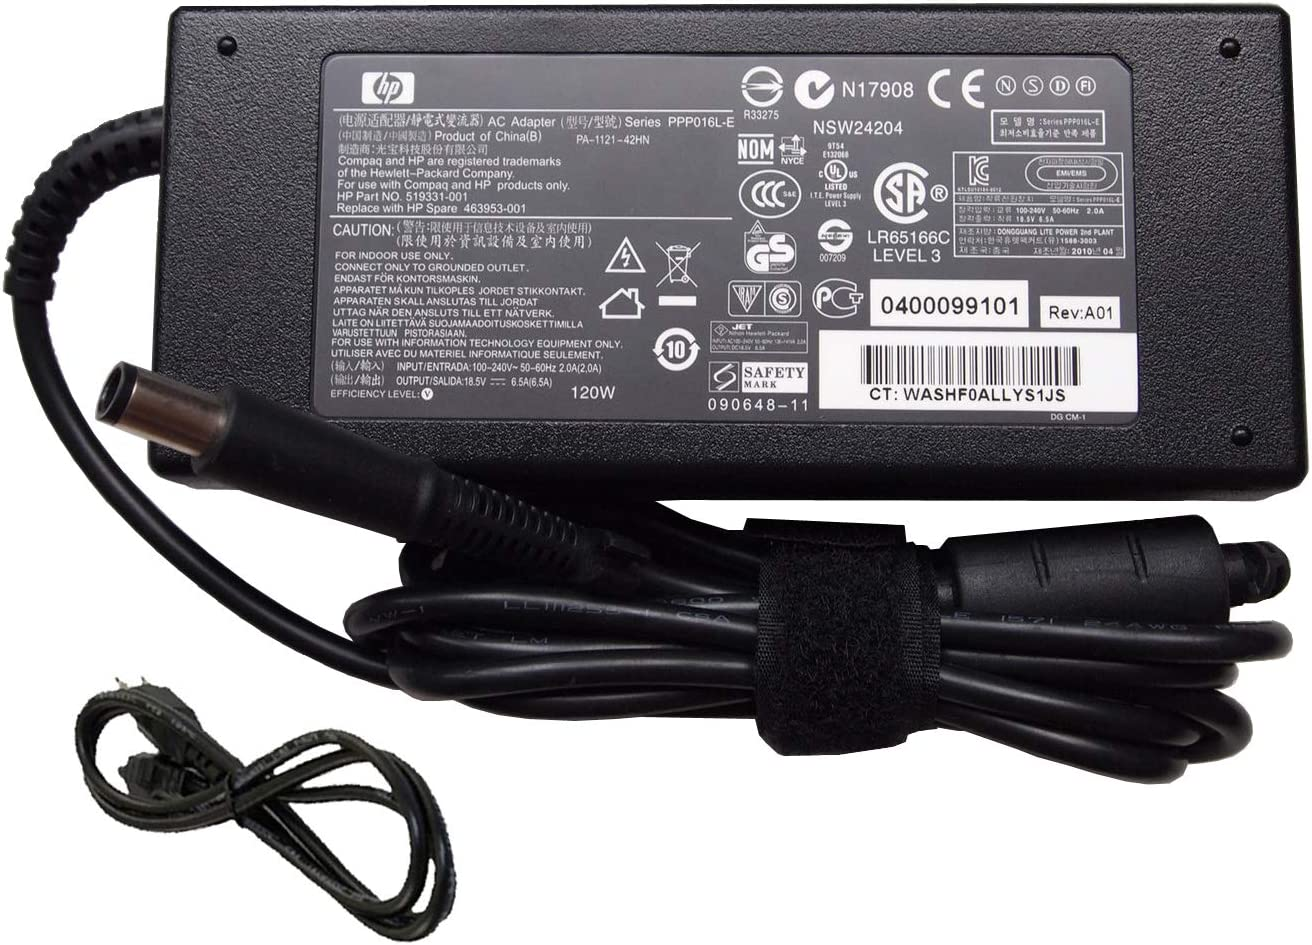 UpBright AC Adapter Compatible with HP OEM Pavilion 27 AIO Desktop 27-xa001127-xa0013w27-xa0014 27-xa0080 27-n01027-n04127-n060xt 27-n160xt 27-n121 27-a010 27-a127c 27-r014la 27-d0240t 19.5V 120W